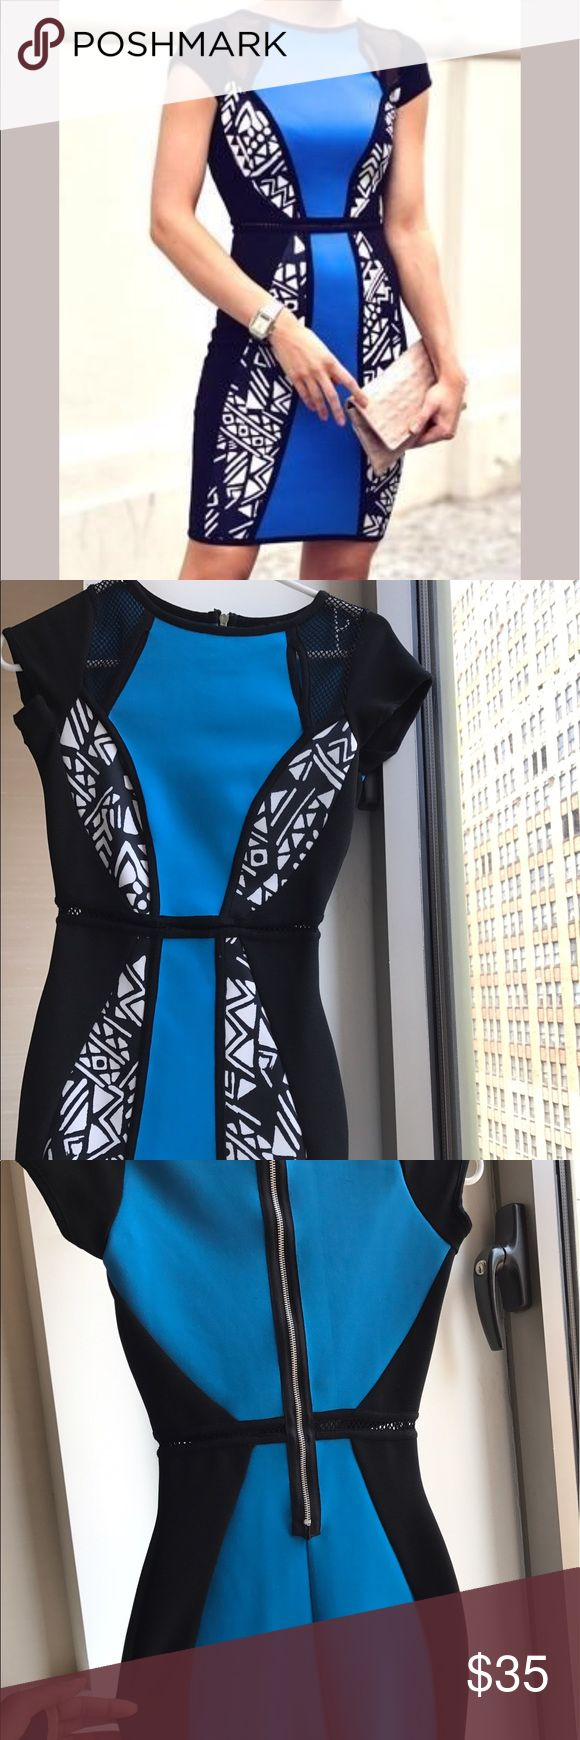 "River Island Bodycon Aztec Print Cobalt blue and black River Island body con mini dress. Size 6 but would fit a size 4. I'm 5'7"" and this would work for shorter girls. Very form flattering with breathable mesh inserts for eye catching detail. Exposed silver back zipper. Smoke and pet free home. River Island Dresses Mini"